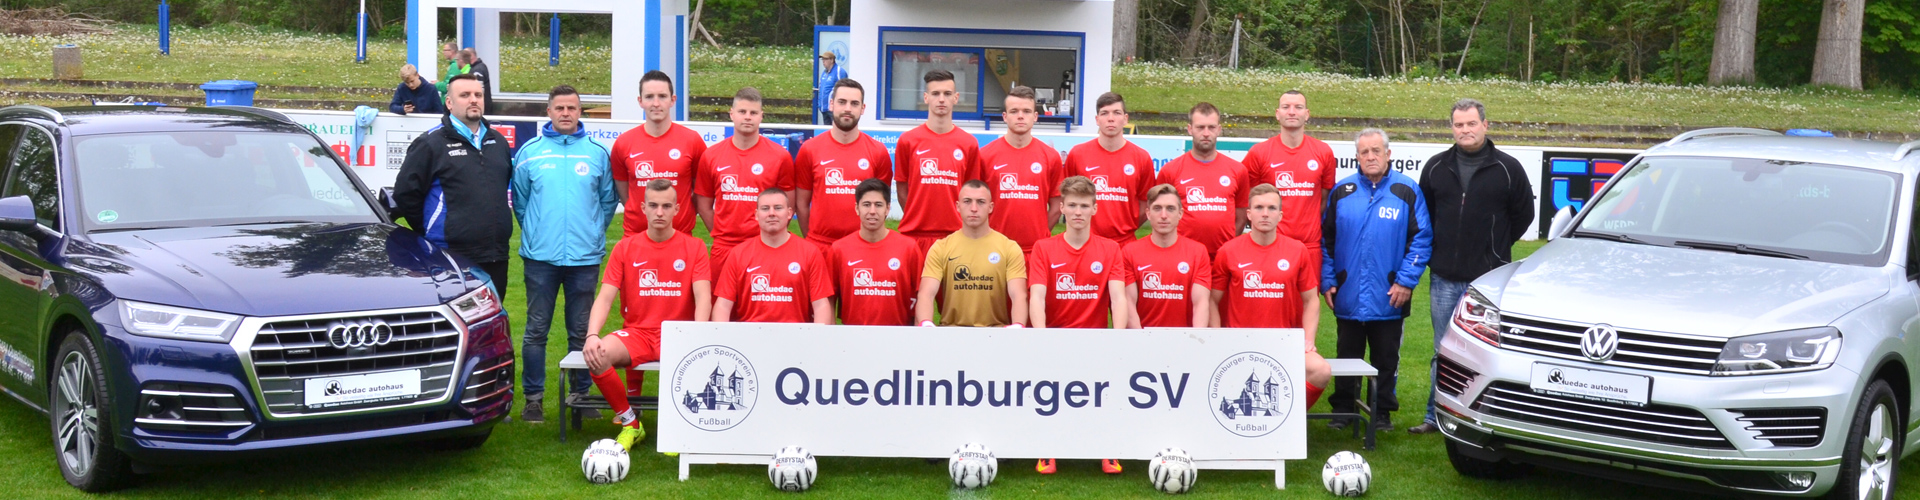 qsv-fussball-slider-12